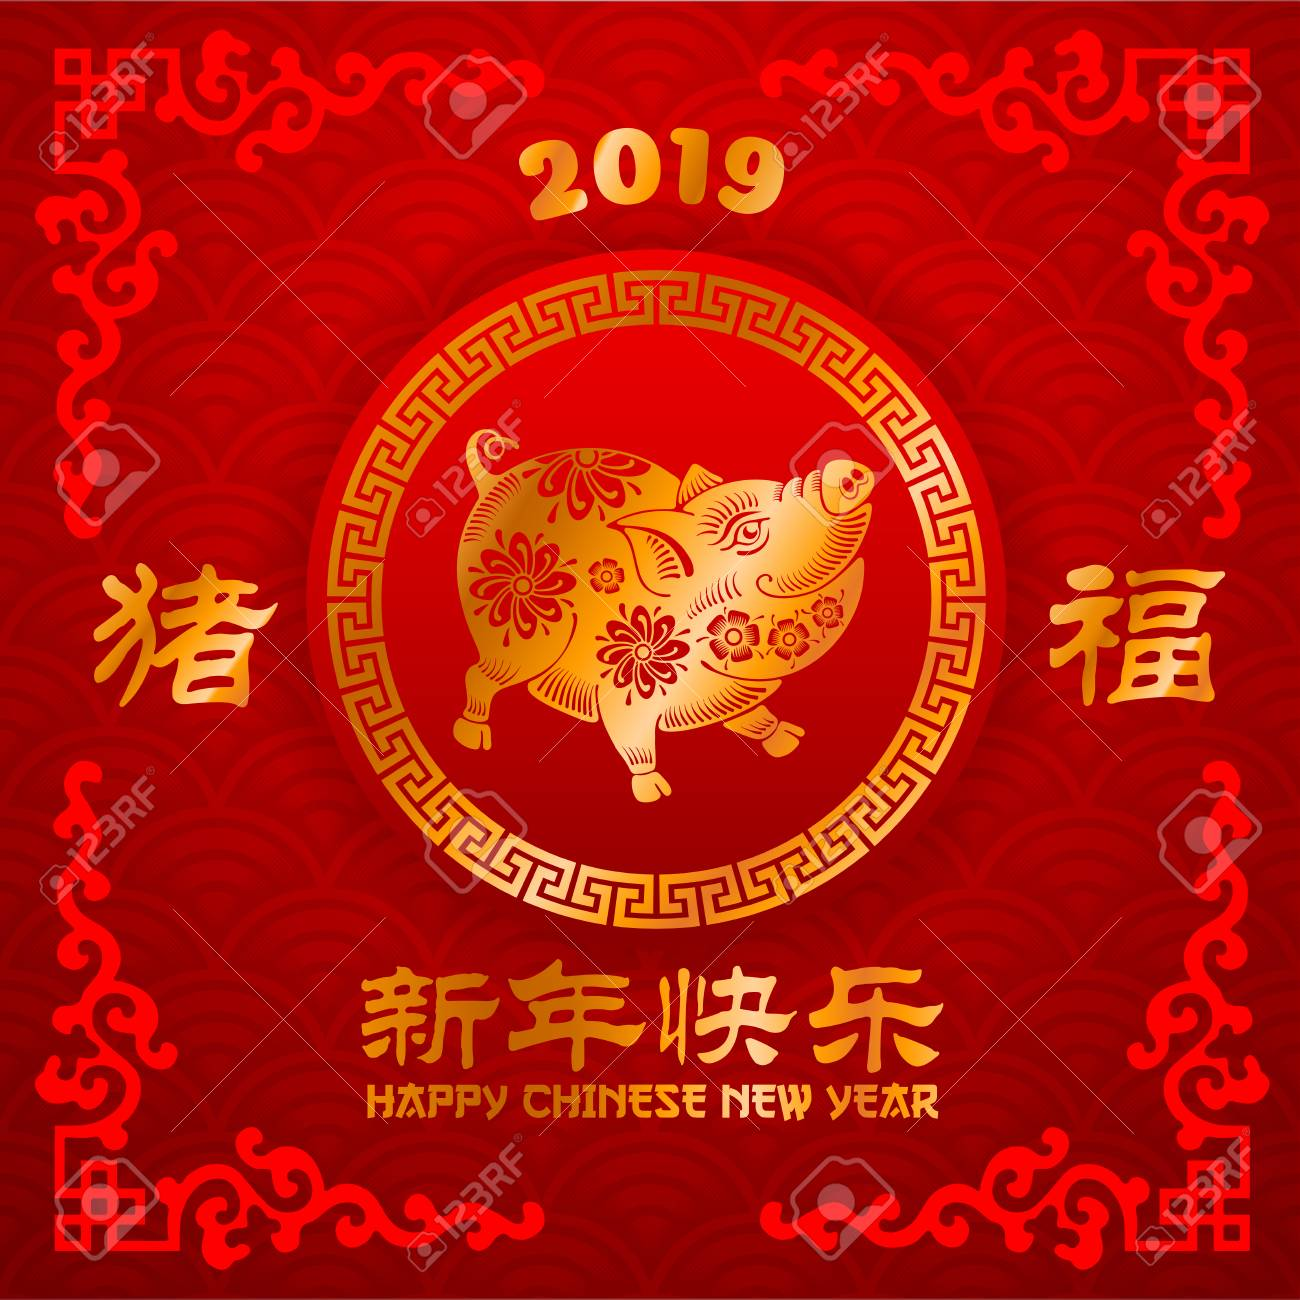 Happy New Year Chinese 11